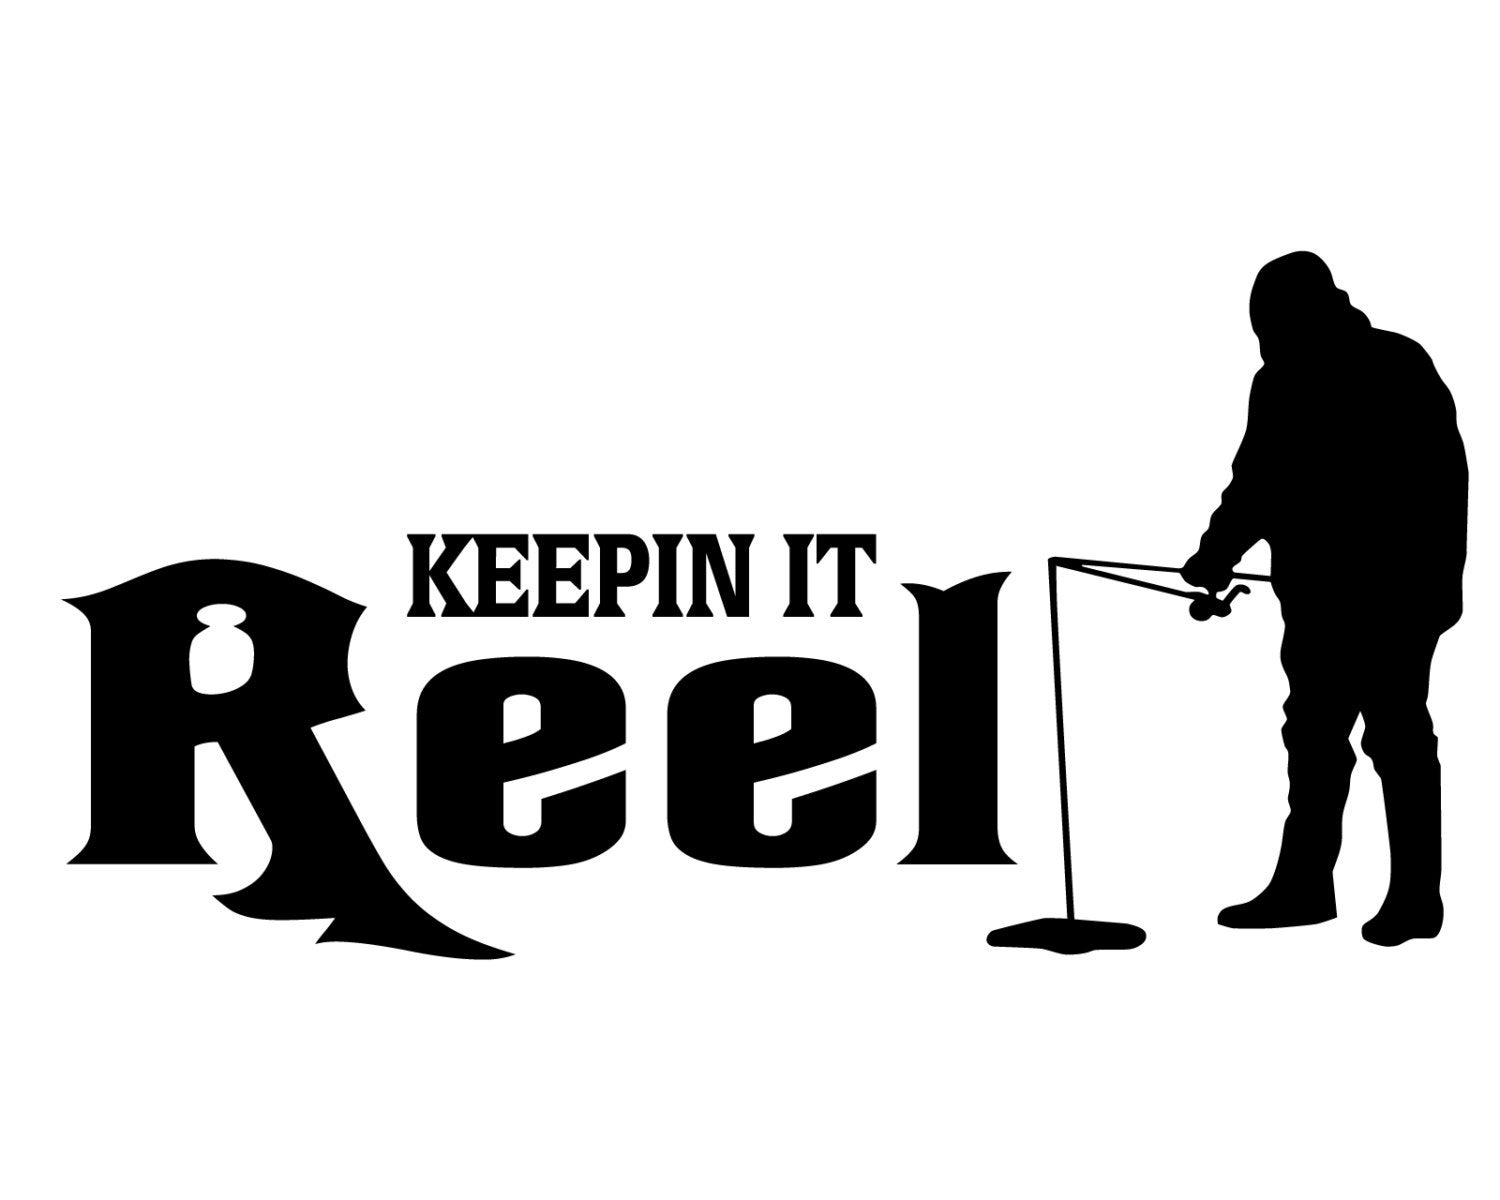 Ice fishing decal keepin it reel ice fish sticker for Fishing stickers and decals